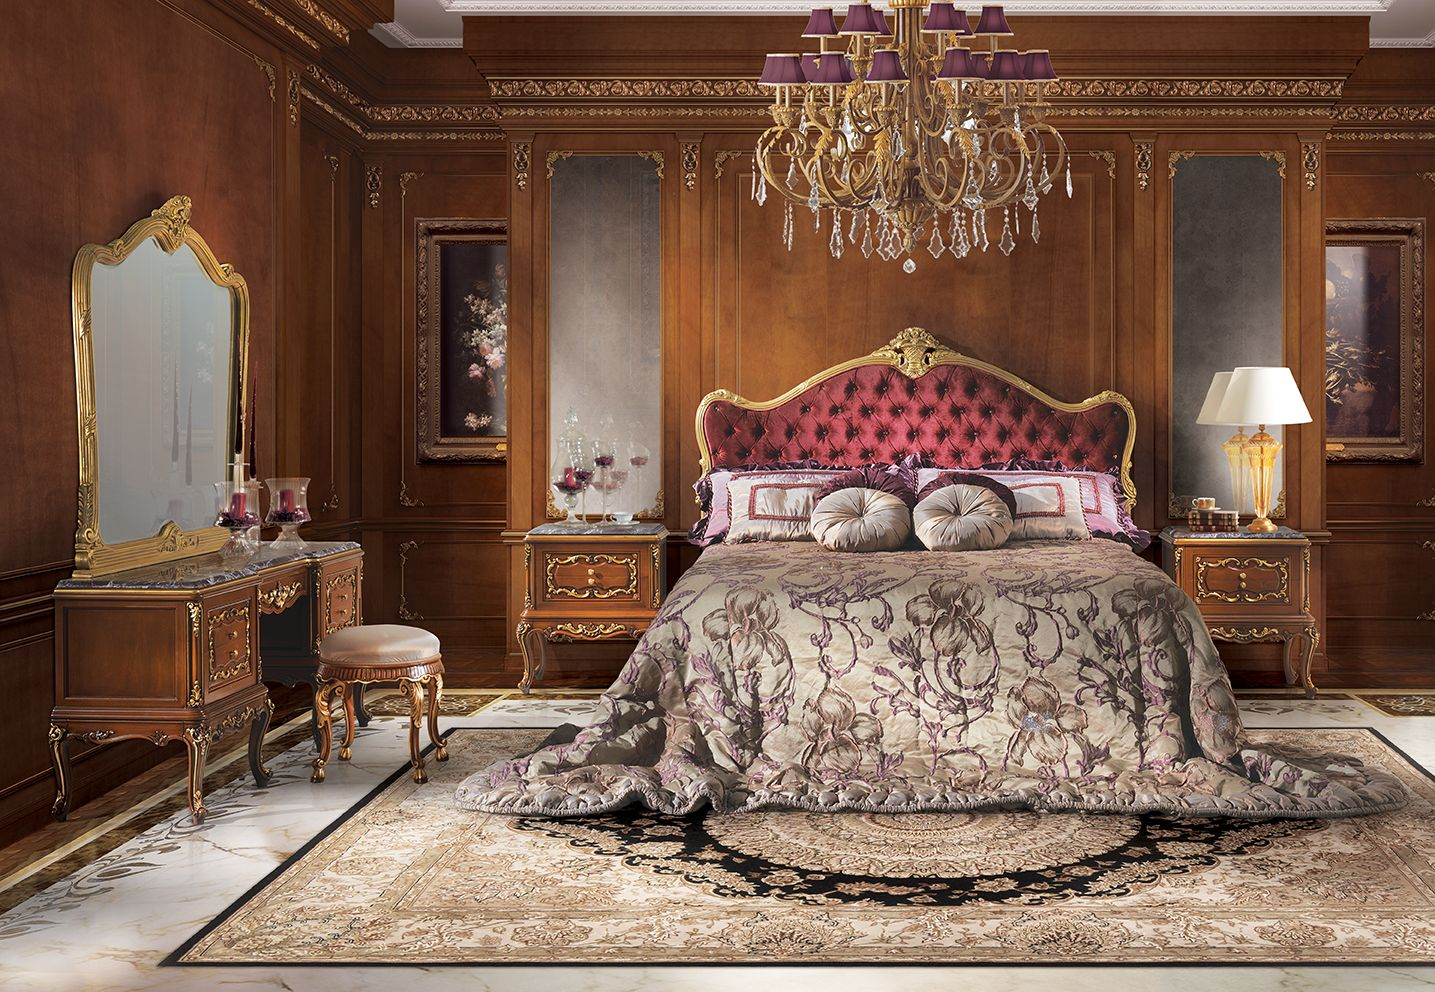 Luxury italian furniture for classic and elegant